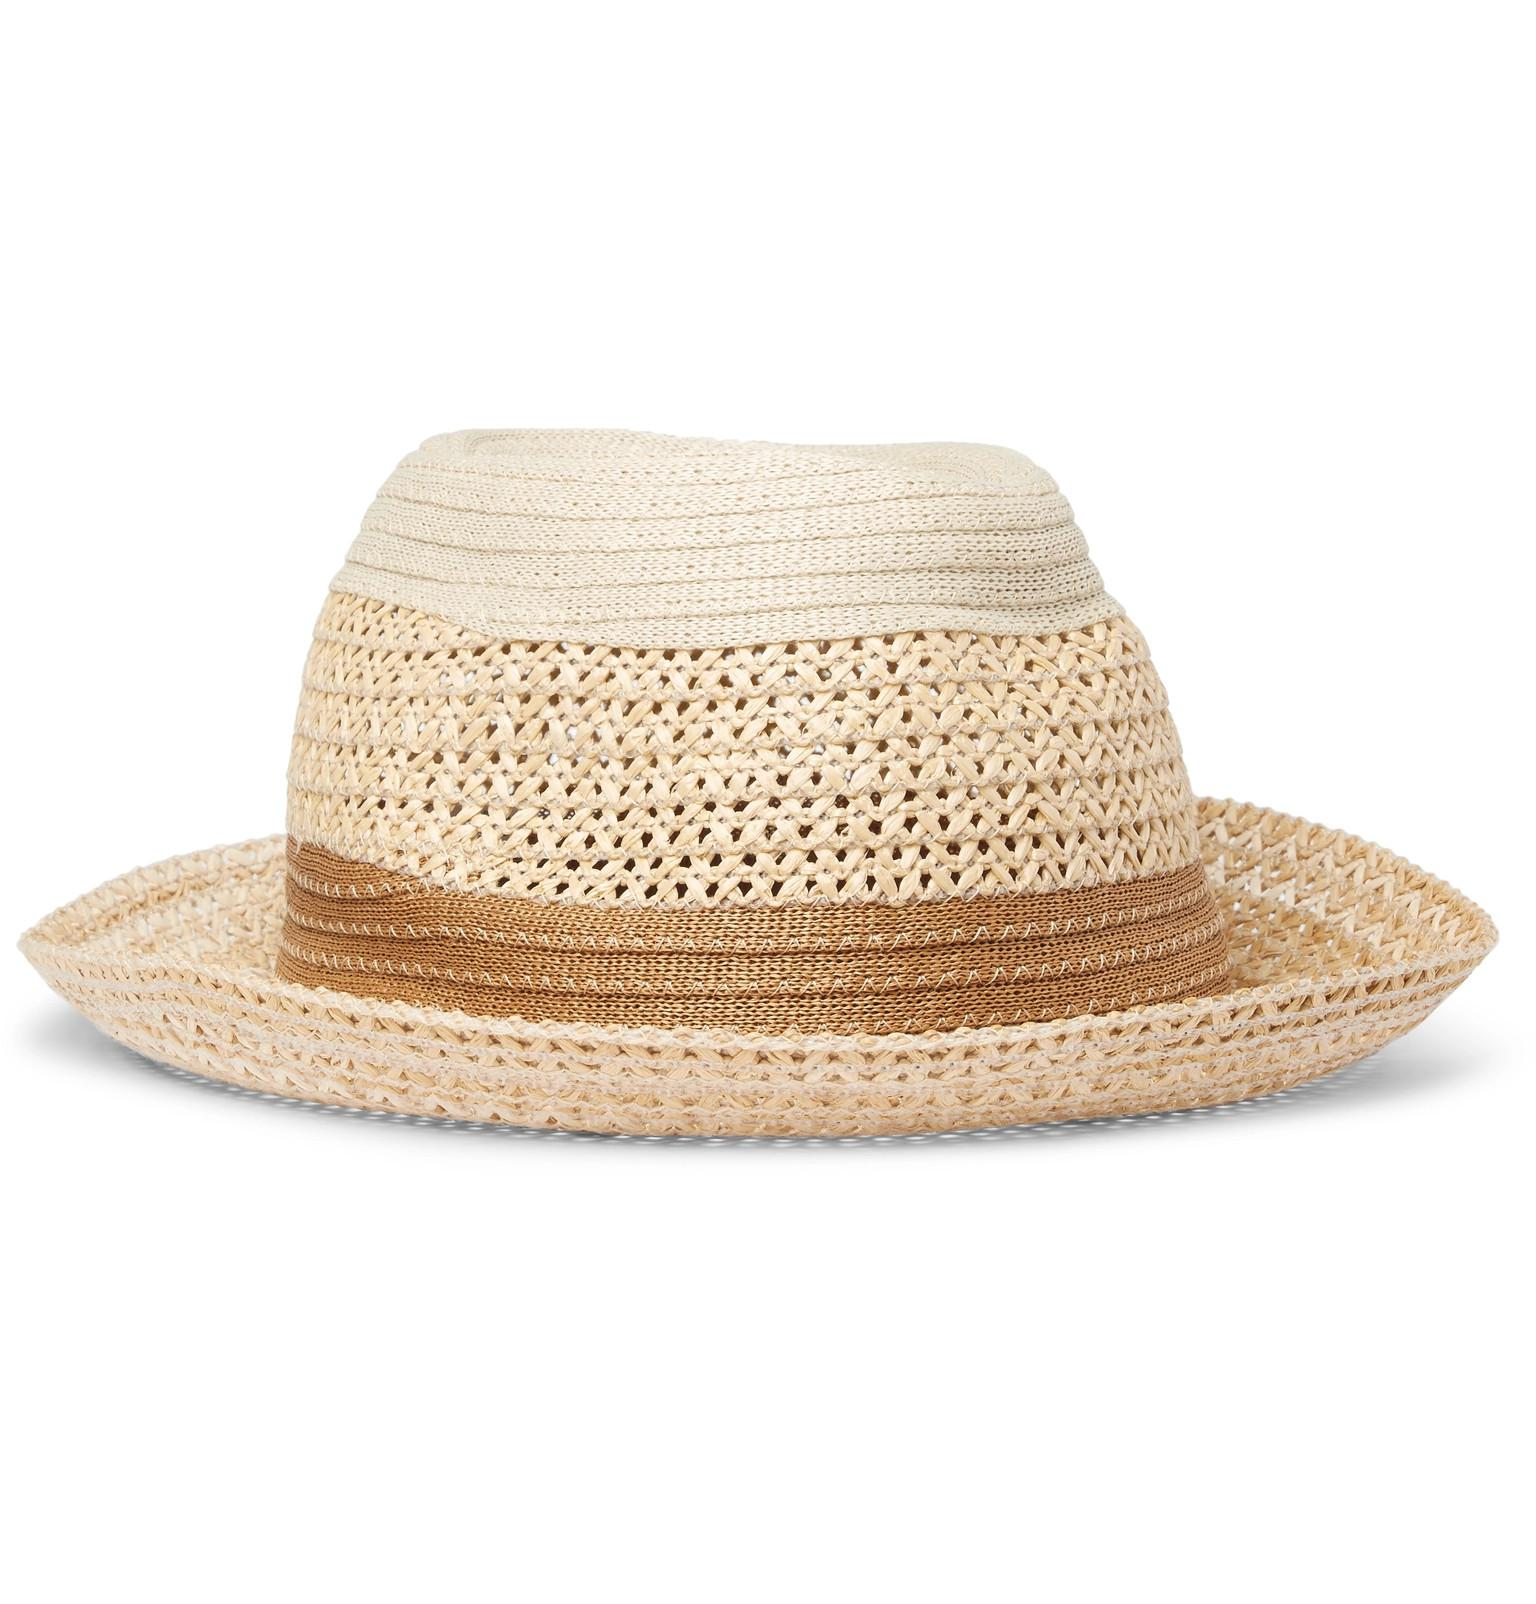 a4e676a6f0f Paul Smith Woven Panama Hat in Natural for Men - Lyst